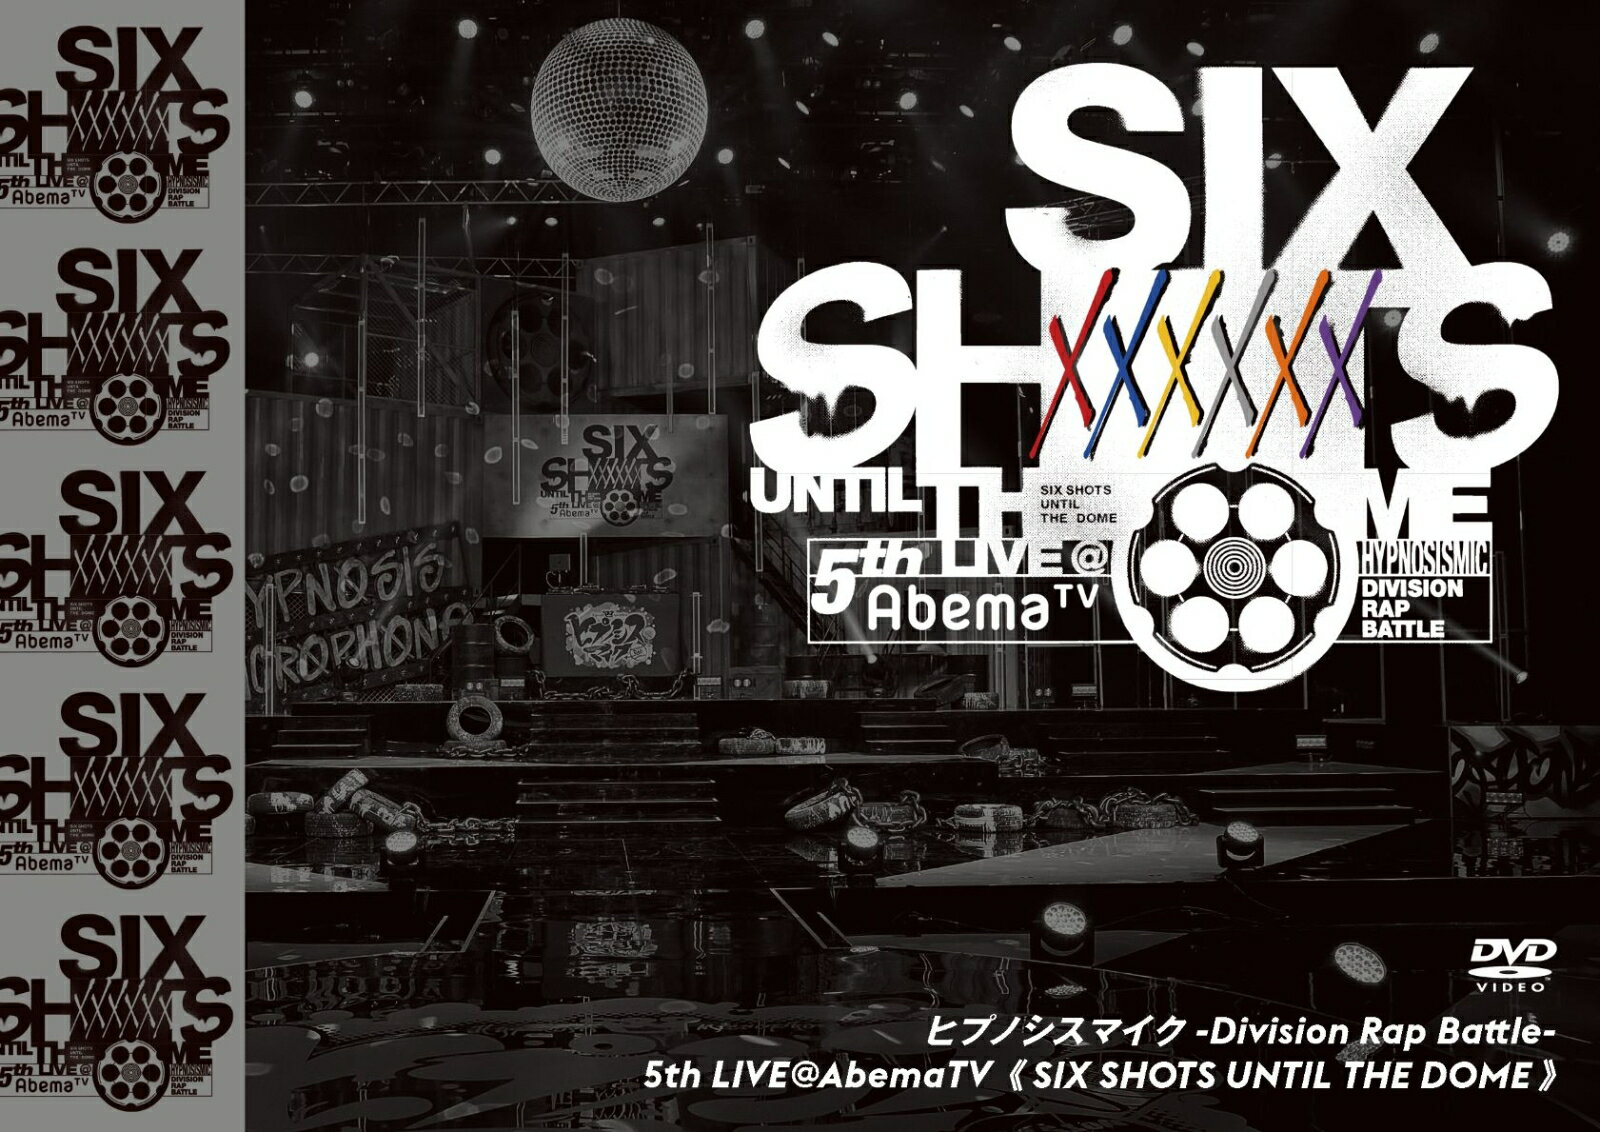 ヒプノシスマイク -Division Rap Battle-5th LIVE@AbemaTV《SIX SHOTS UNTIL THE DOME》画像